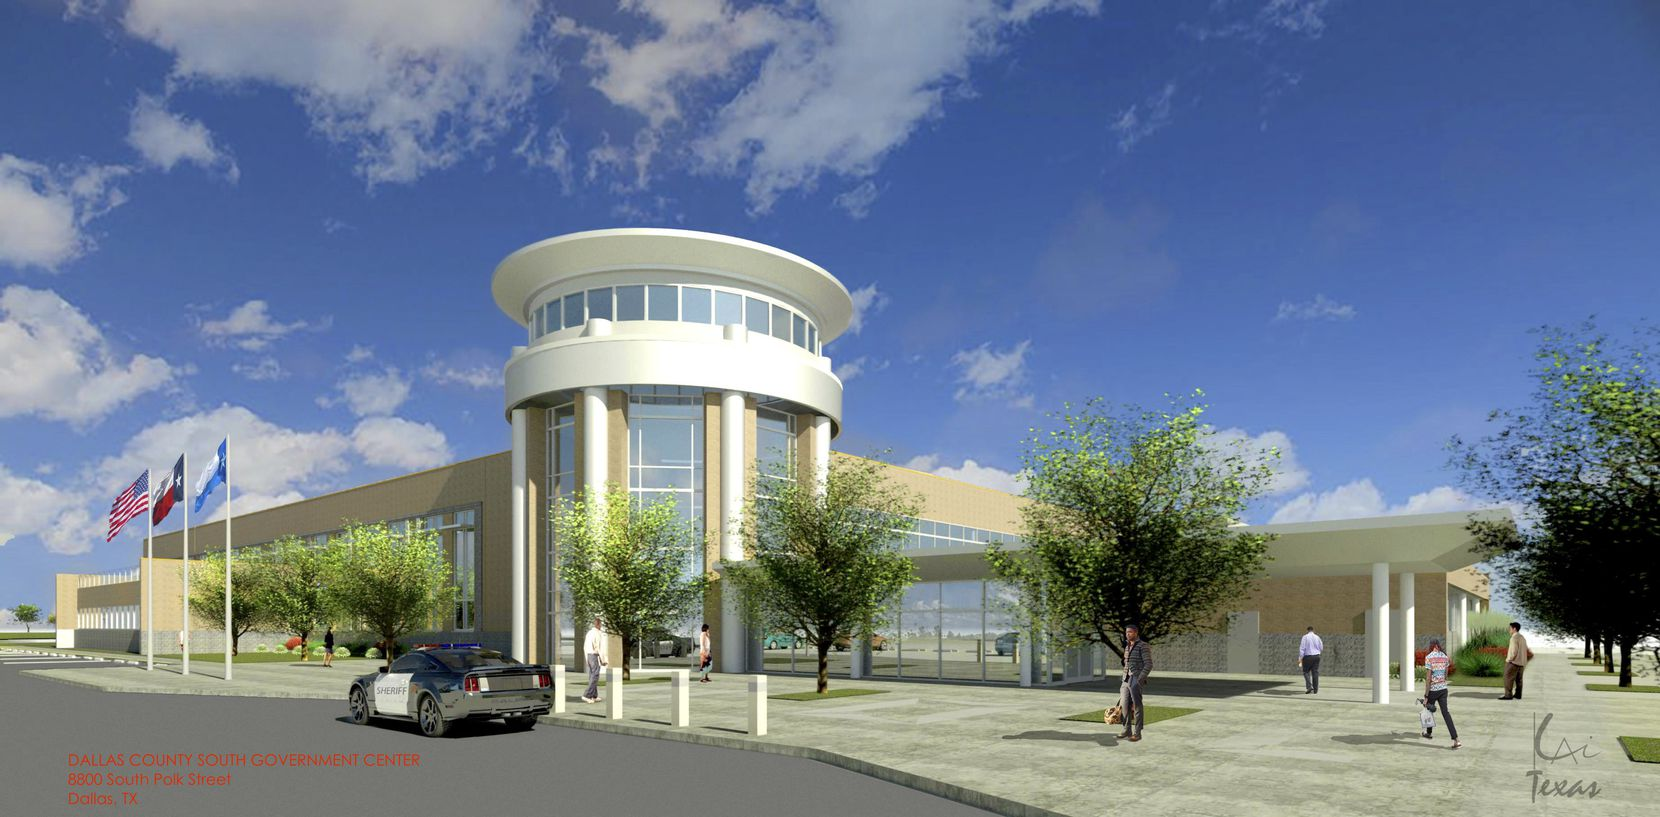 Dallas County offices will occupy a new building on South Polk Street near Interstate 20.